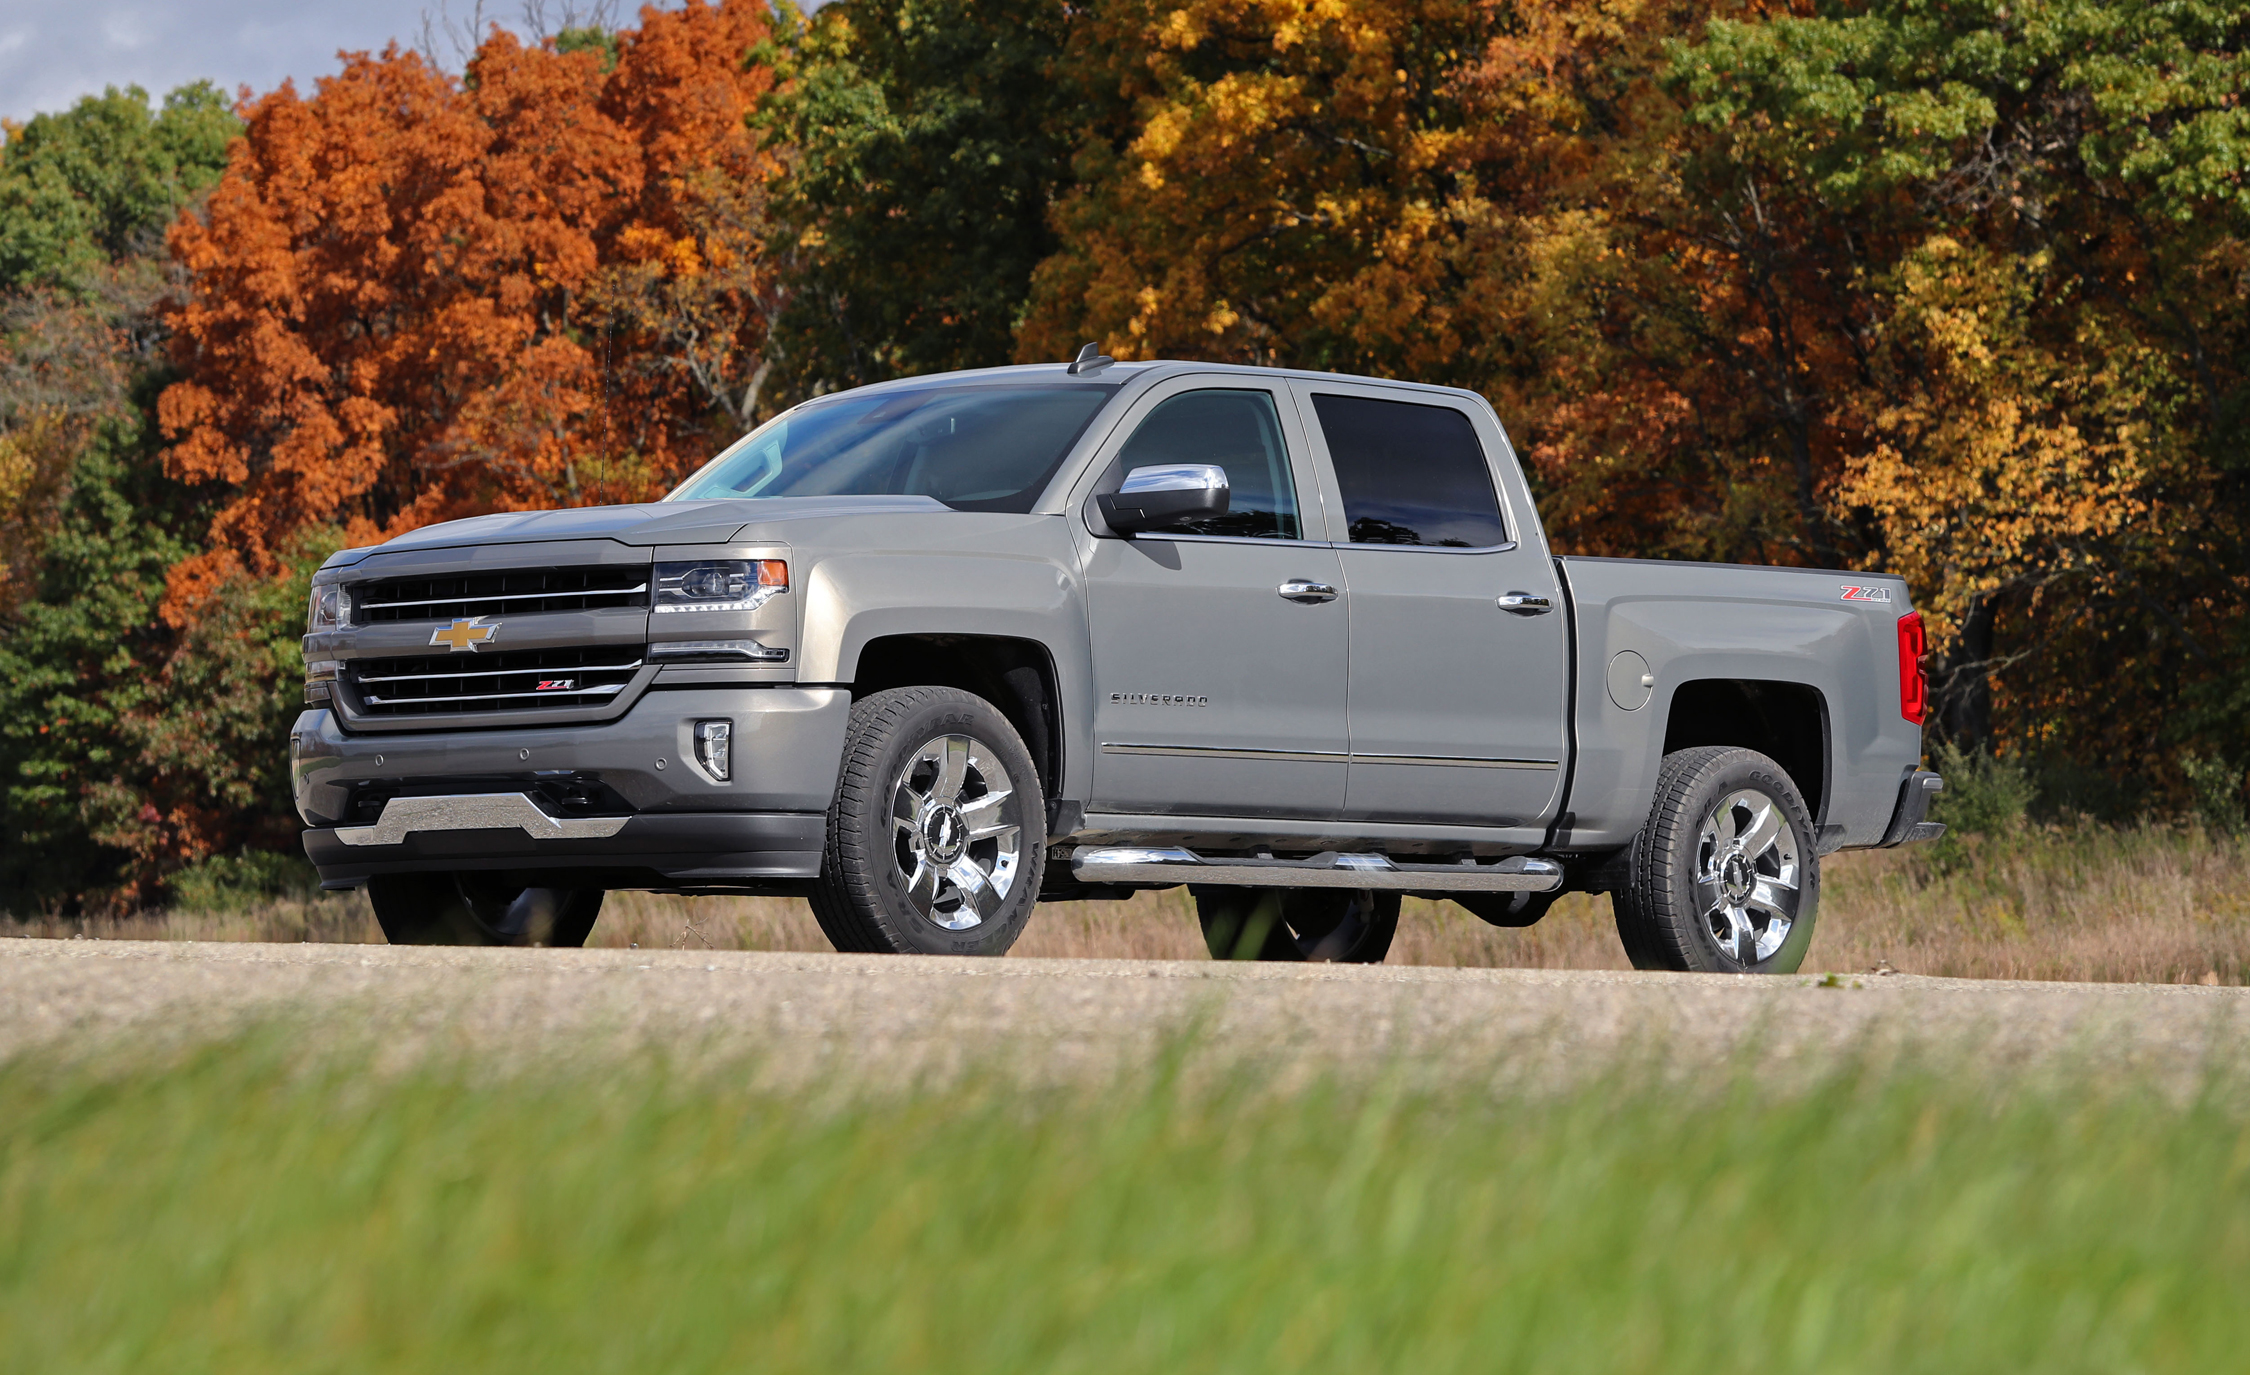 2017 chevrolet silverado 1500 z71 review | gearopen